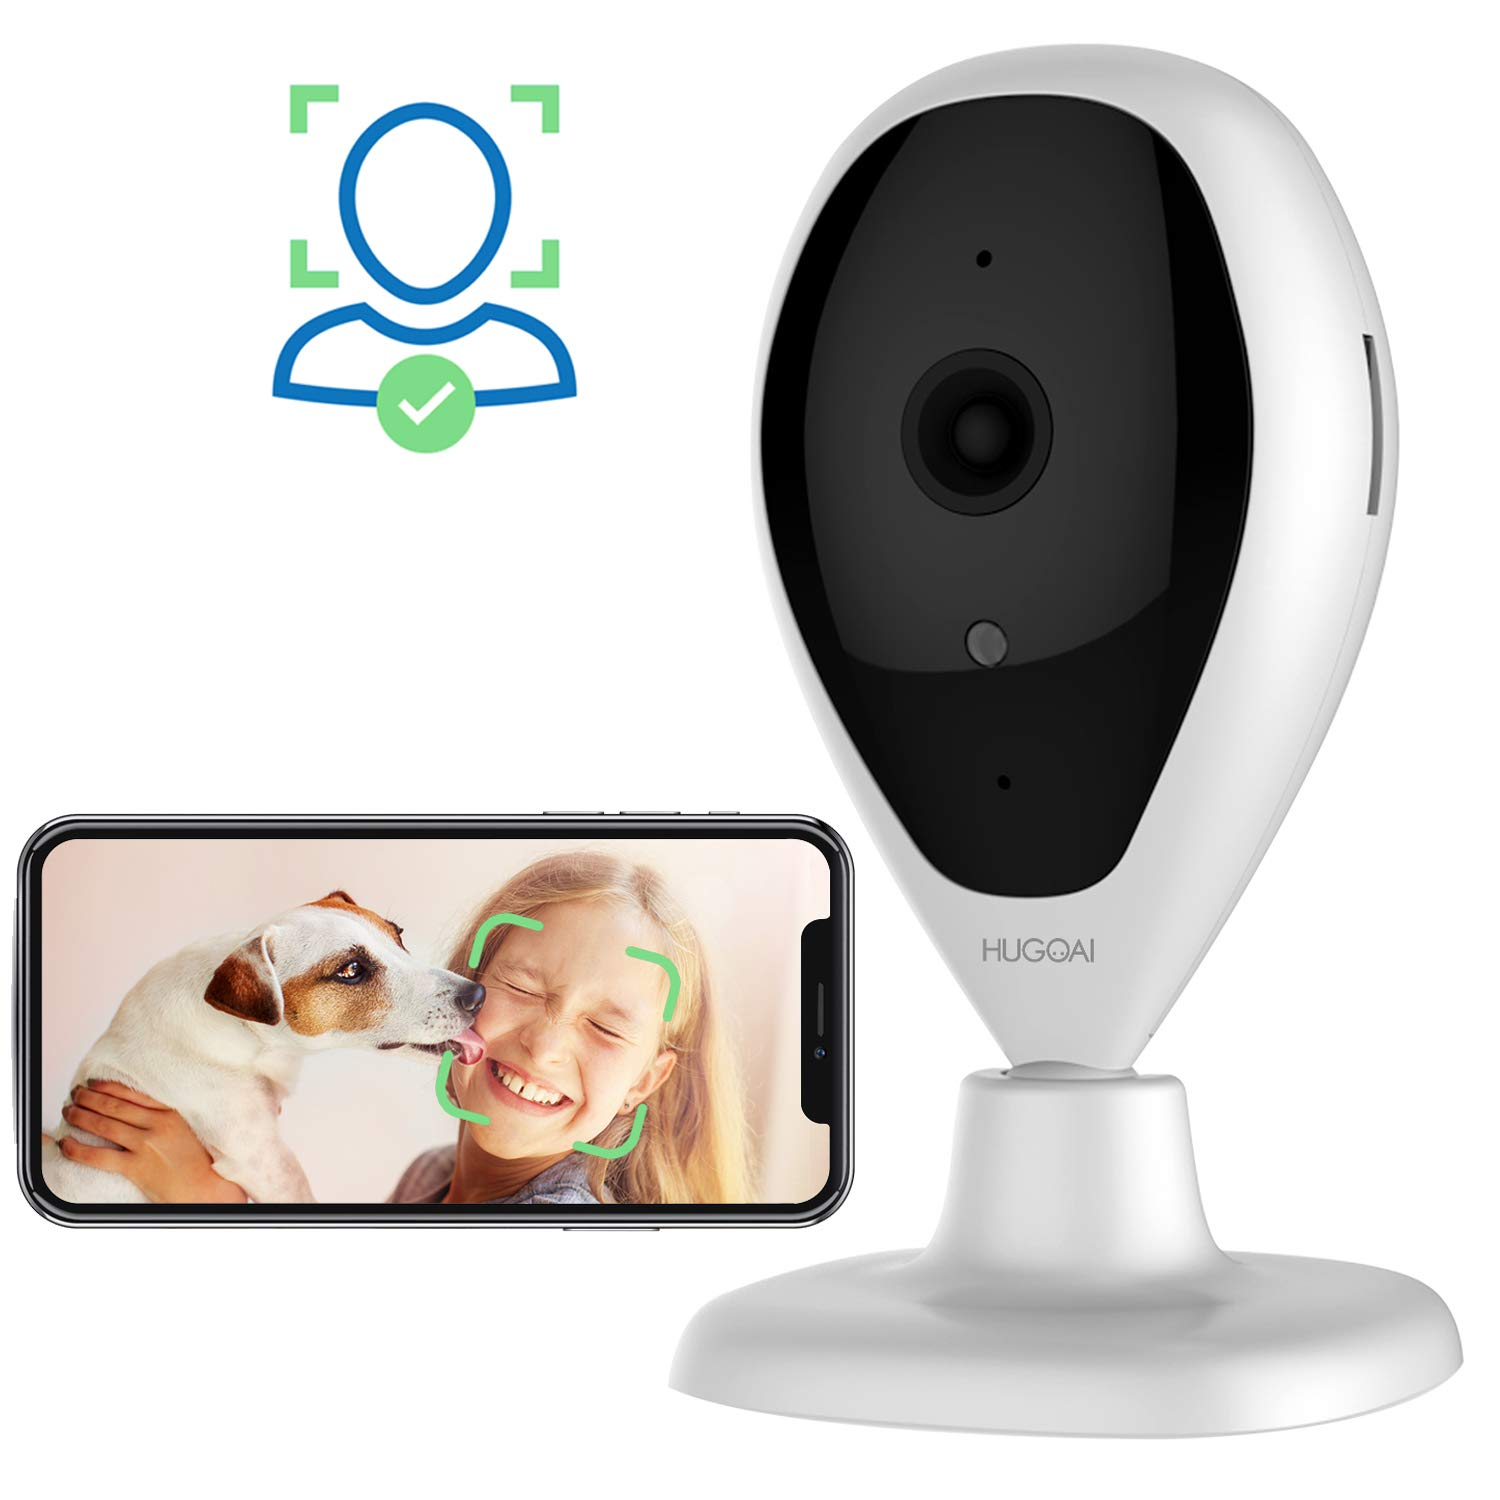 Wireless IP Camera, HUGOAI WiFi 1080P HD Home Security Surveillance Camera with Facial Recognition, Motion Detection, Night Vision, Two Way Audio for Baby Monitor Pet Dog Cameras by HUGOAI